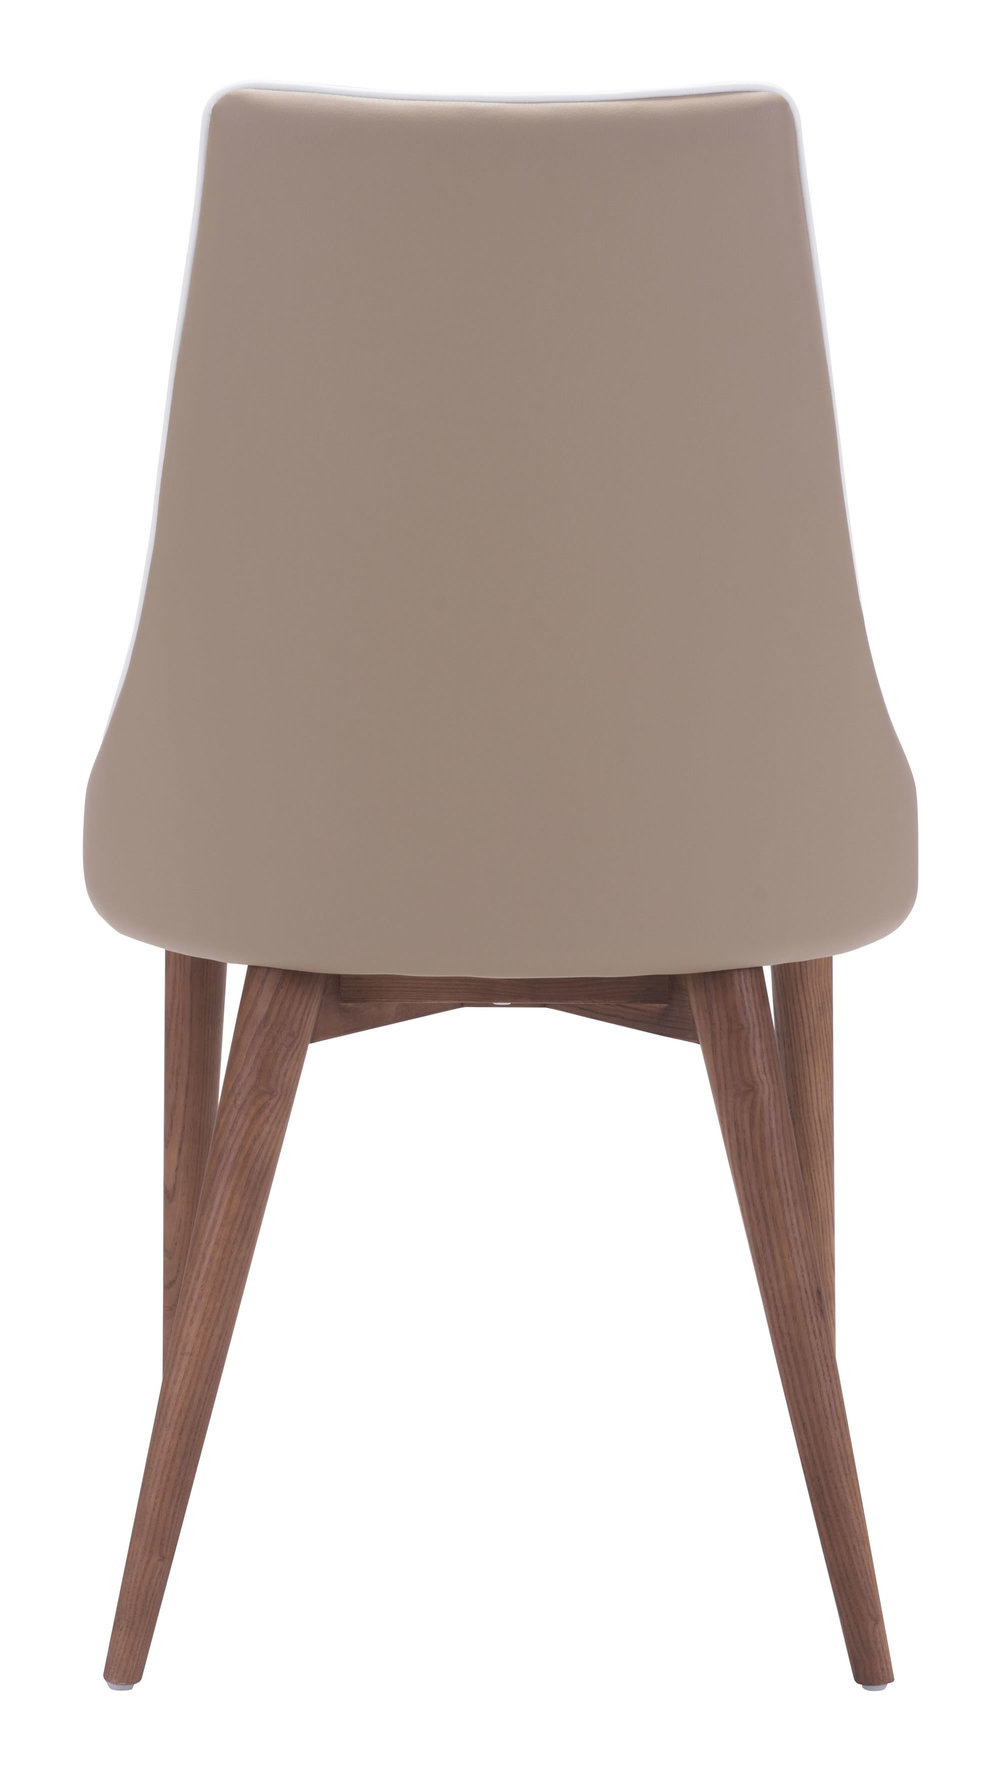 Zuo Modern Contemporary - Moor Dining Chair - Set of 2 - Beige